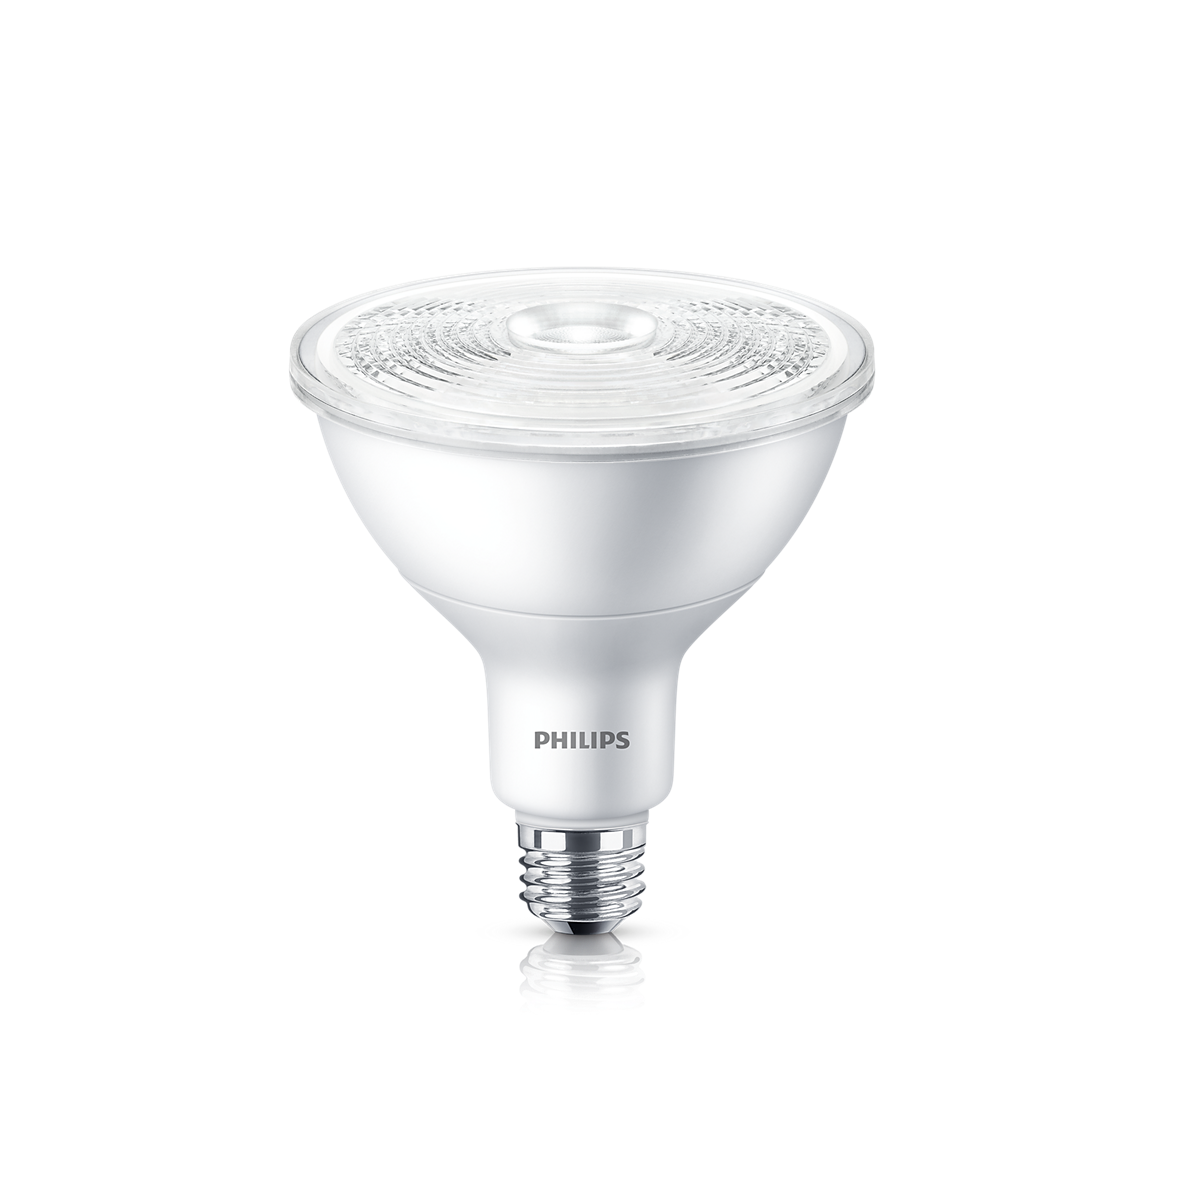 spots PAR38 LED LED Philips LED PAR38 LED wZuTXiPOk